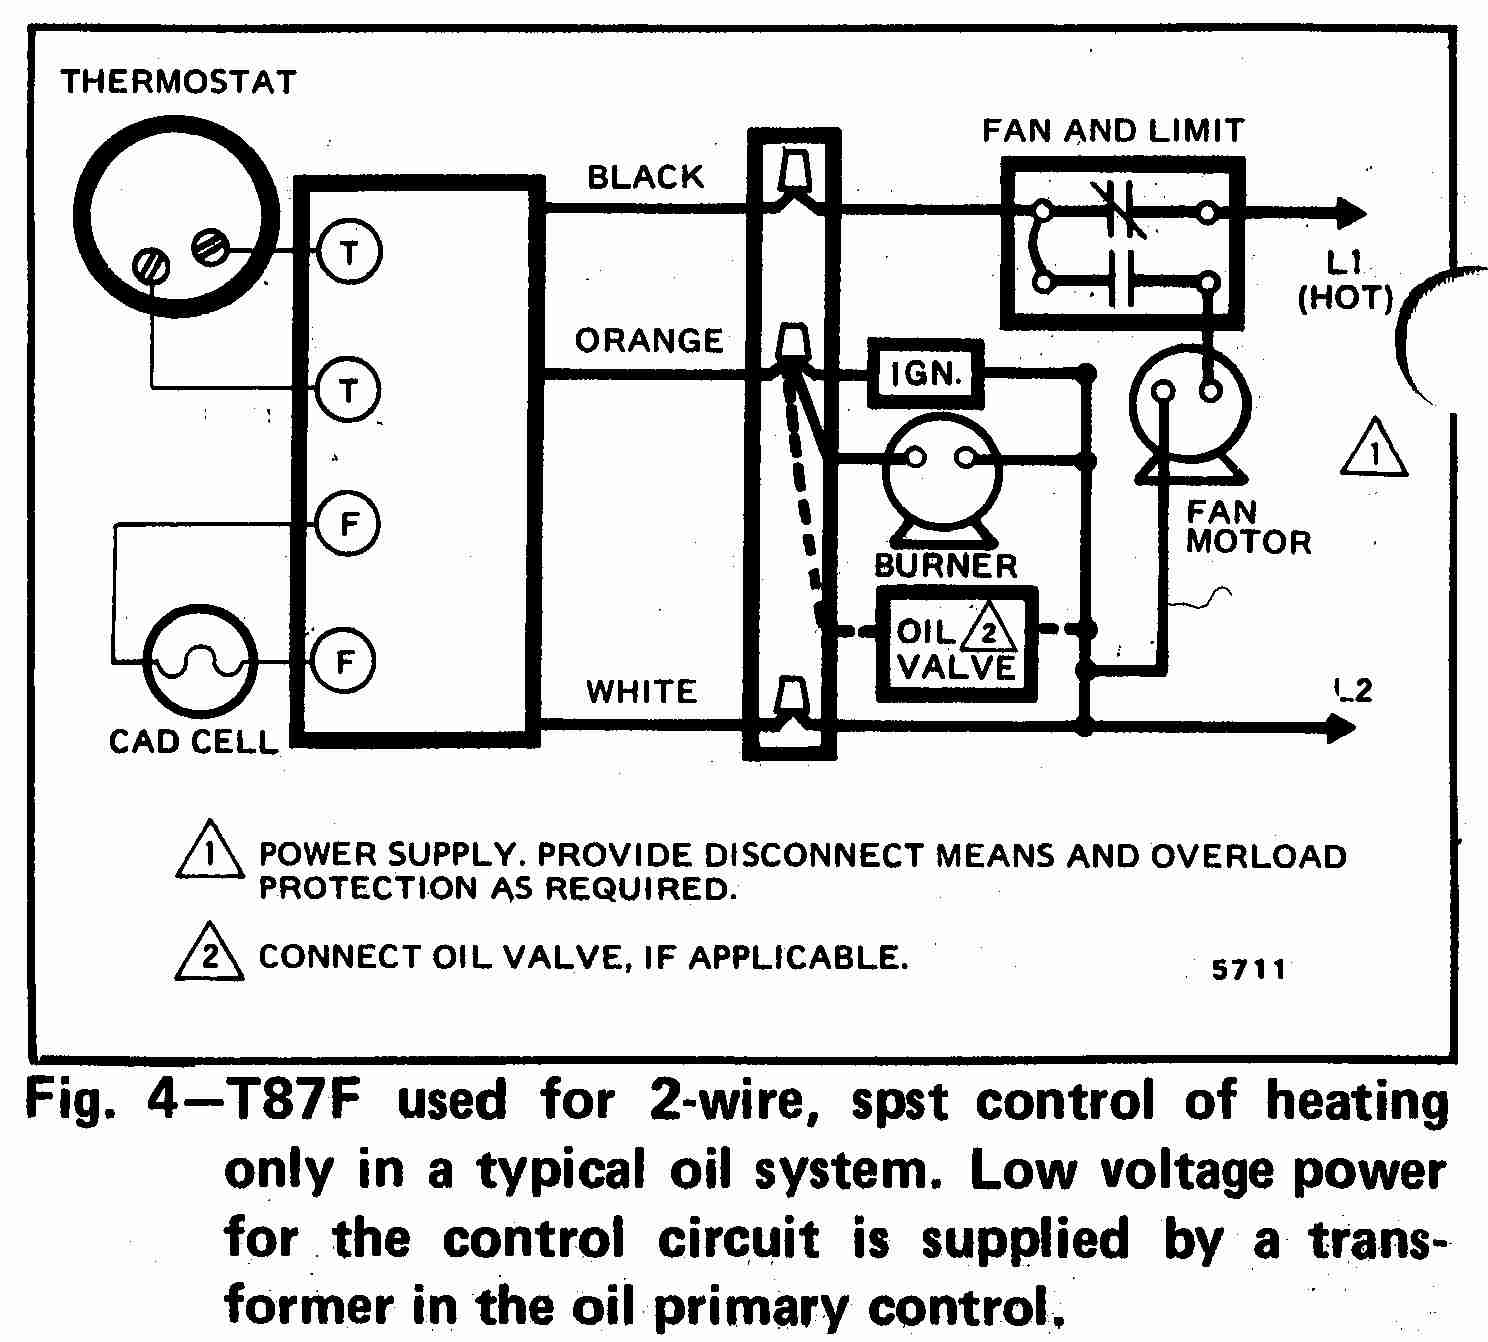 Honeywell T87F Thermostat wiring diagram for 2-wire spst control of heating only in